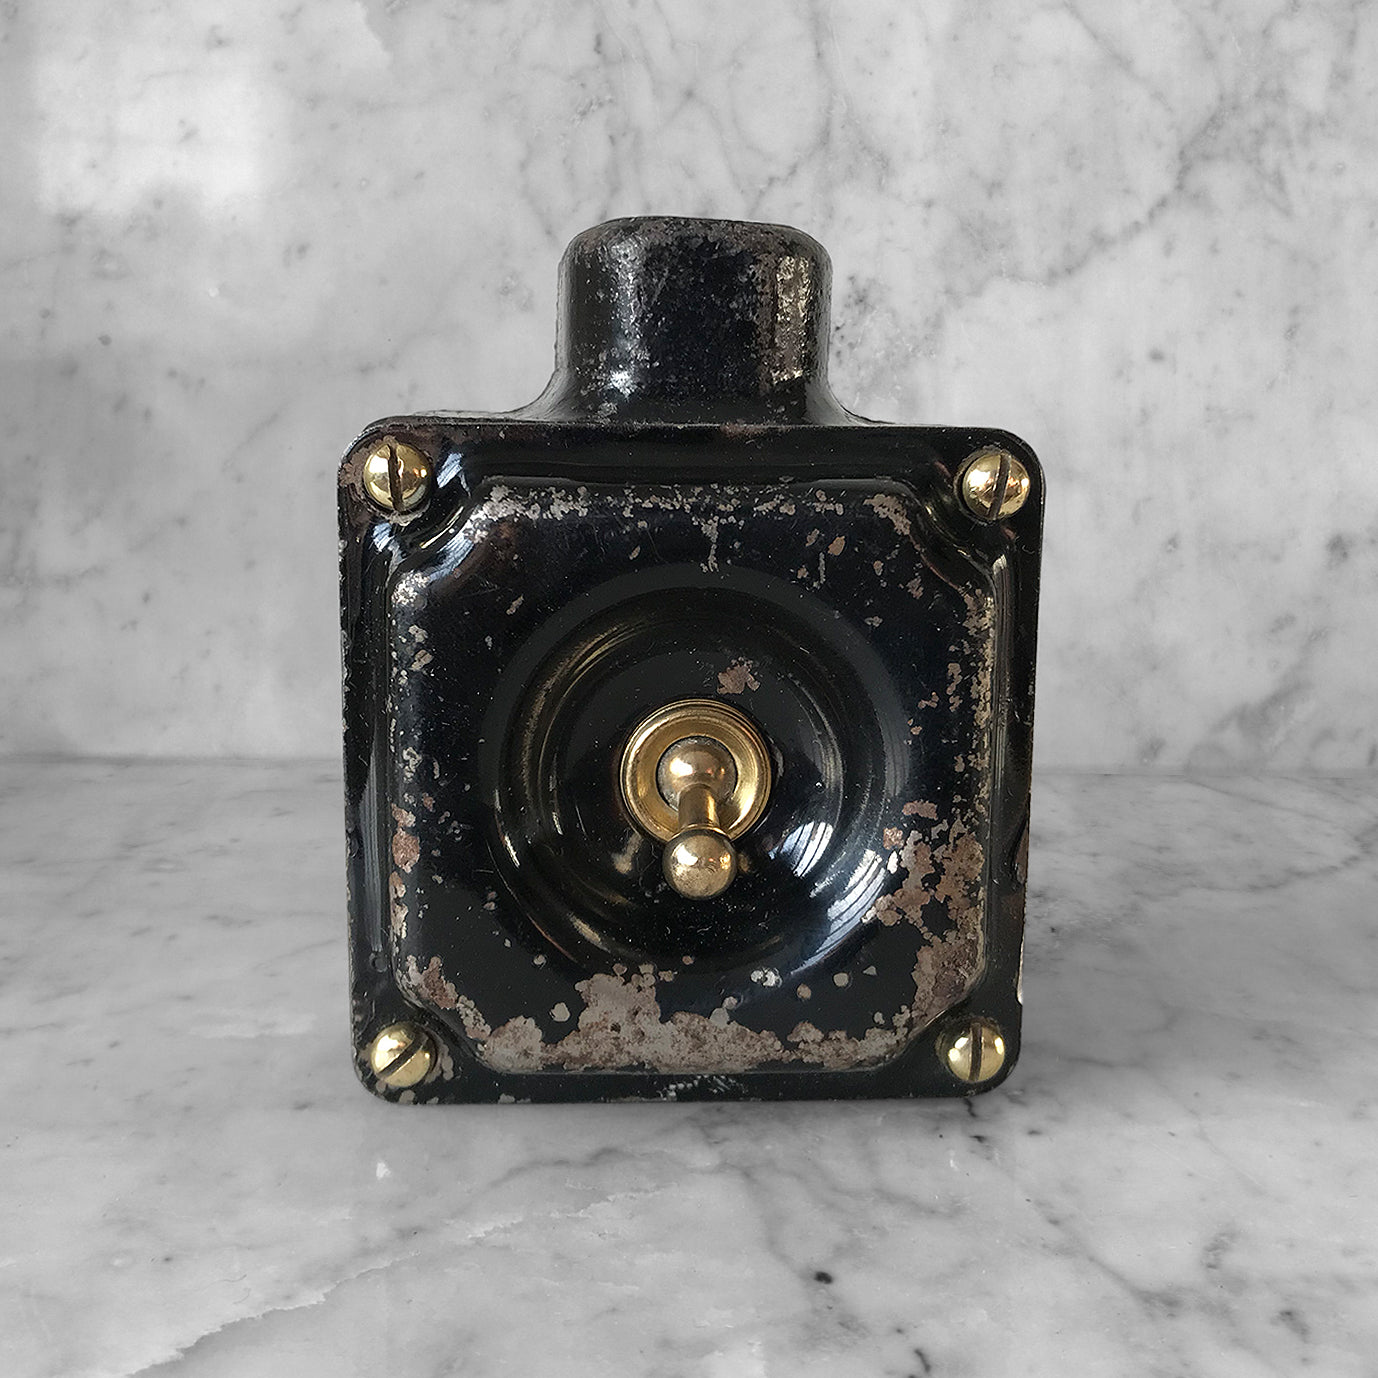 Metal Industrial Switch with a cast iron main body, pressed steel cover with brass toggle switch and brass cover screws with original finish. We have 3 of these switches in stock - SHOP NOW - www.intovintage.co.uk